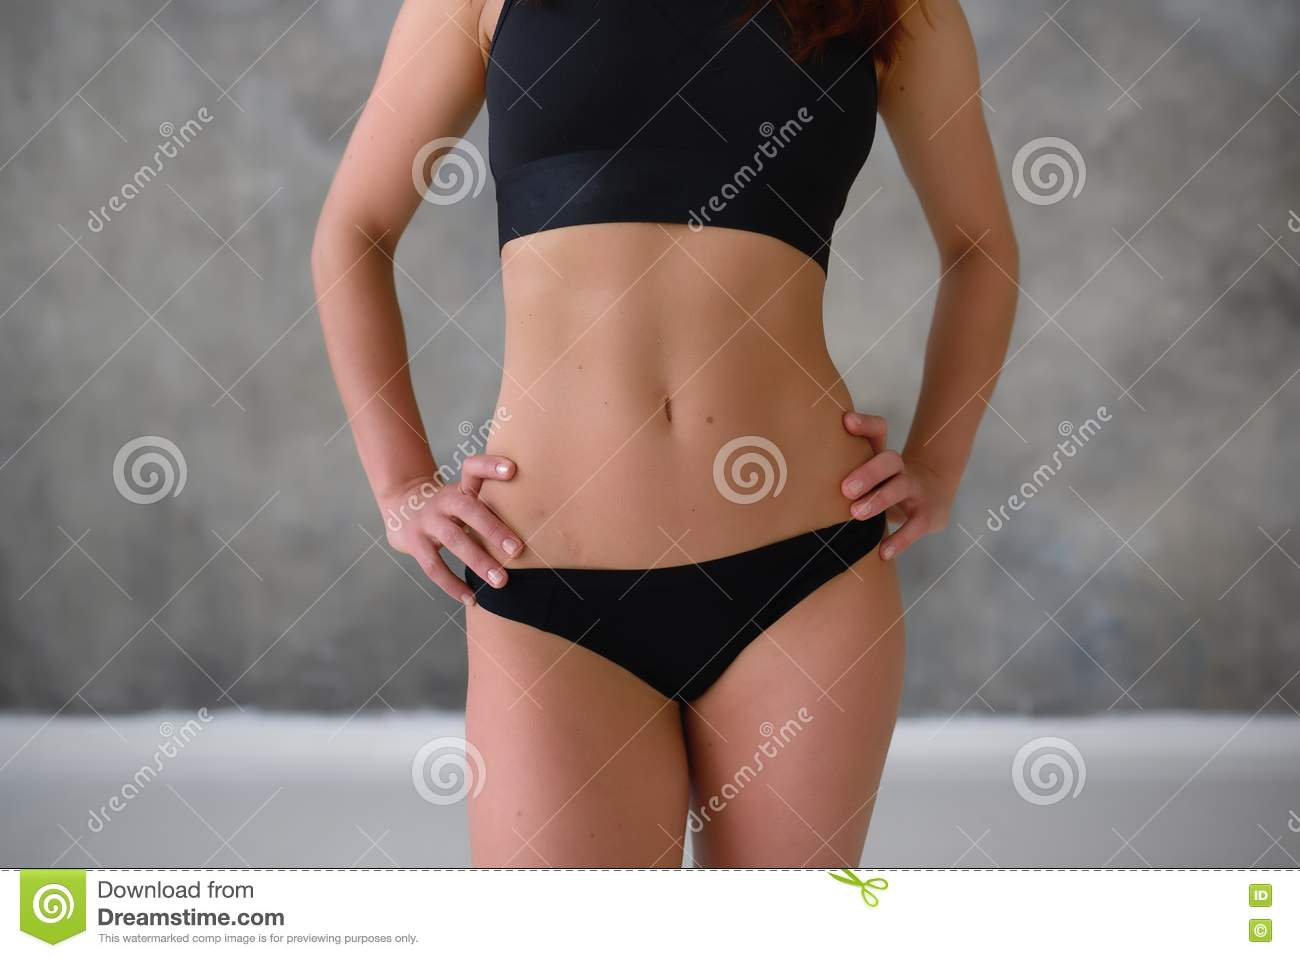 Prostitute Stock Photos, Royalty-Free Images & Vectors